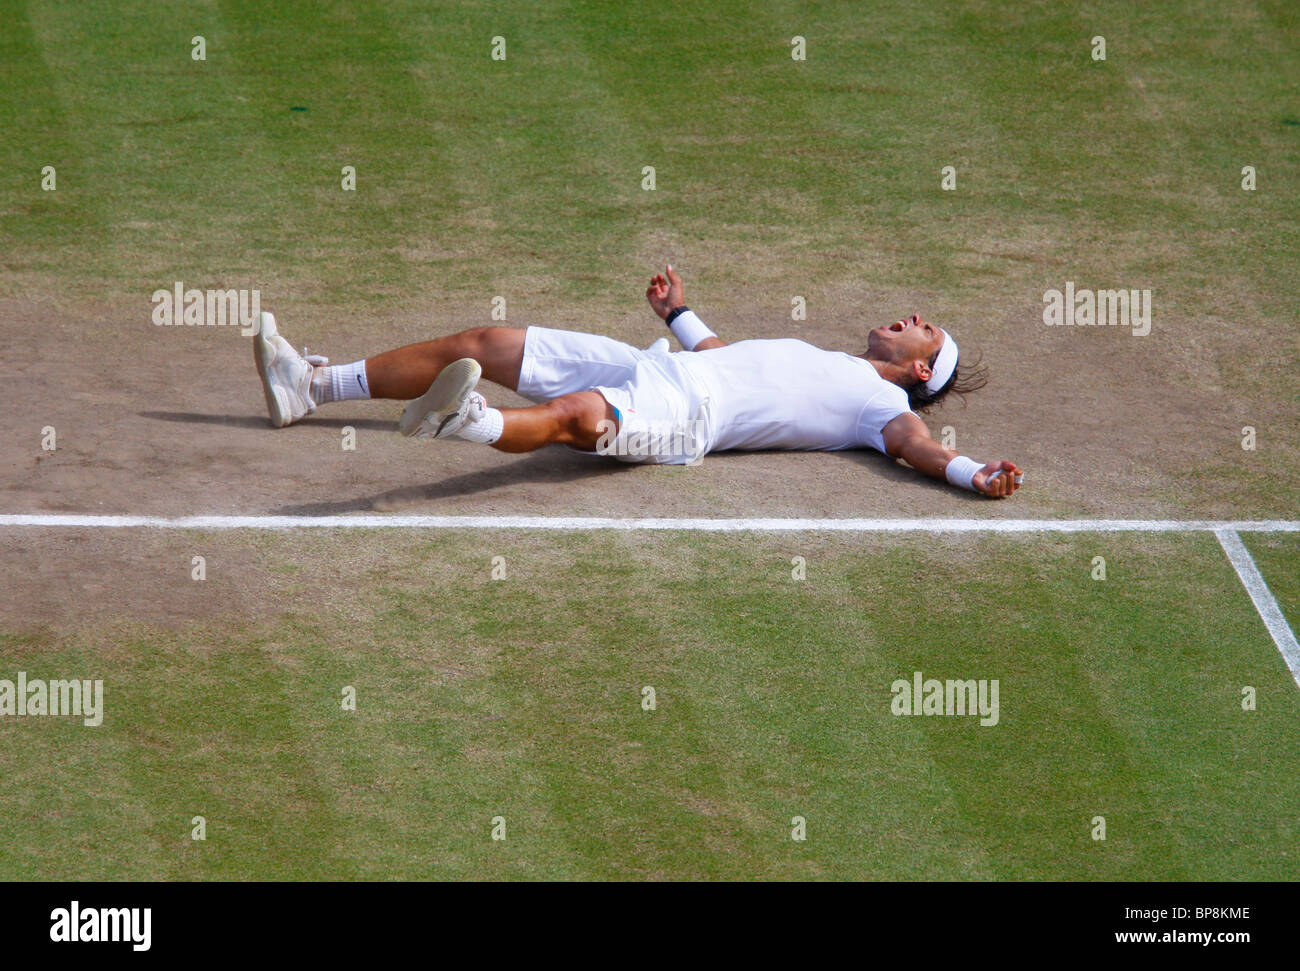 2010 Wimbledon men's singles final winner Rafael Nadal, Spain, - Stock Image